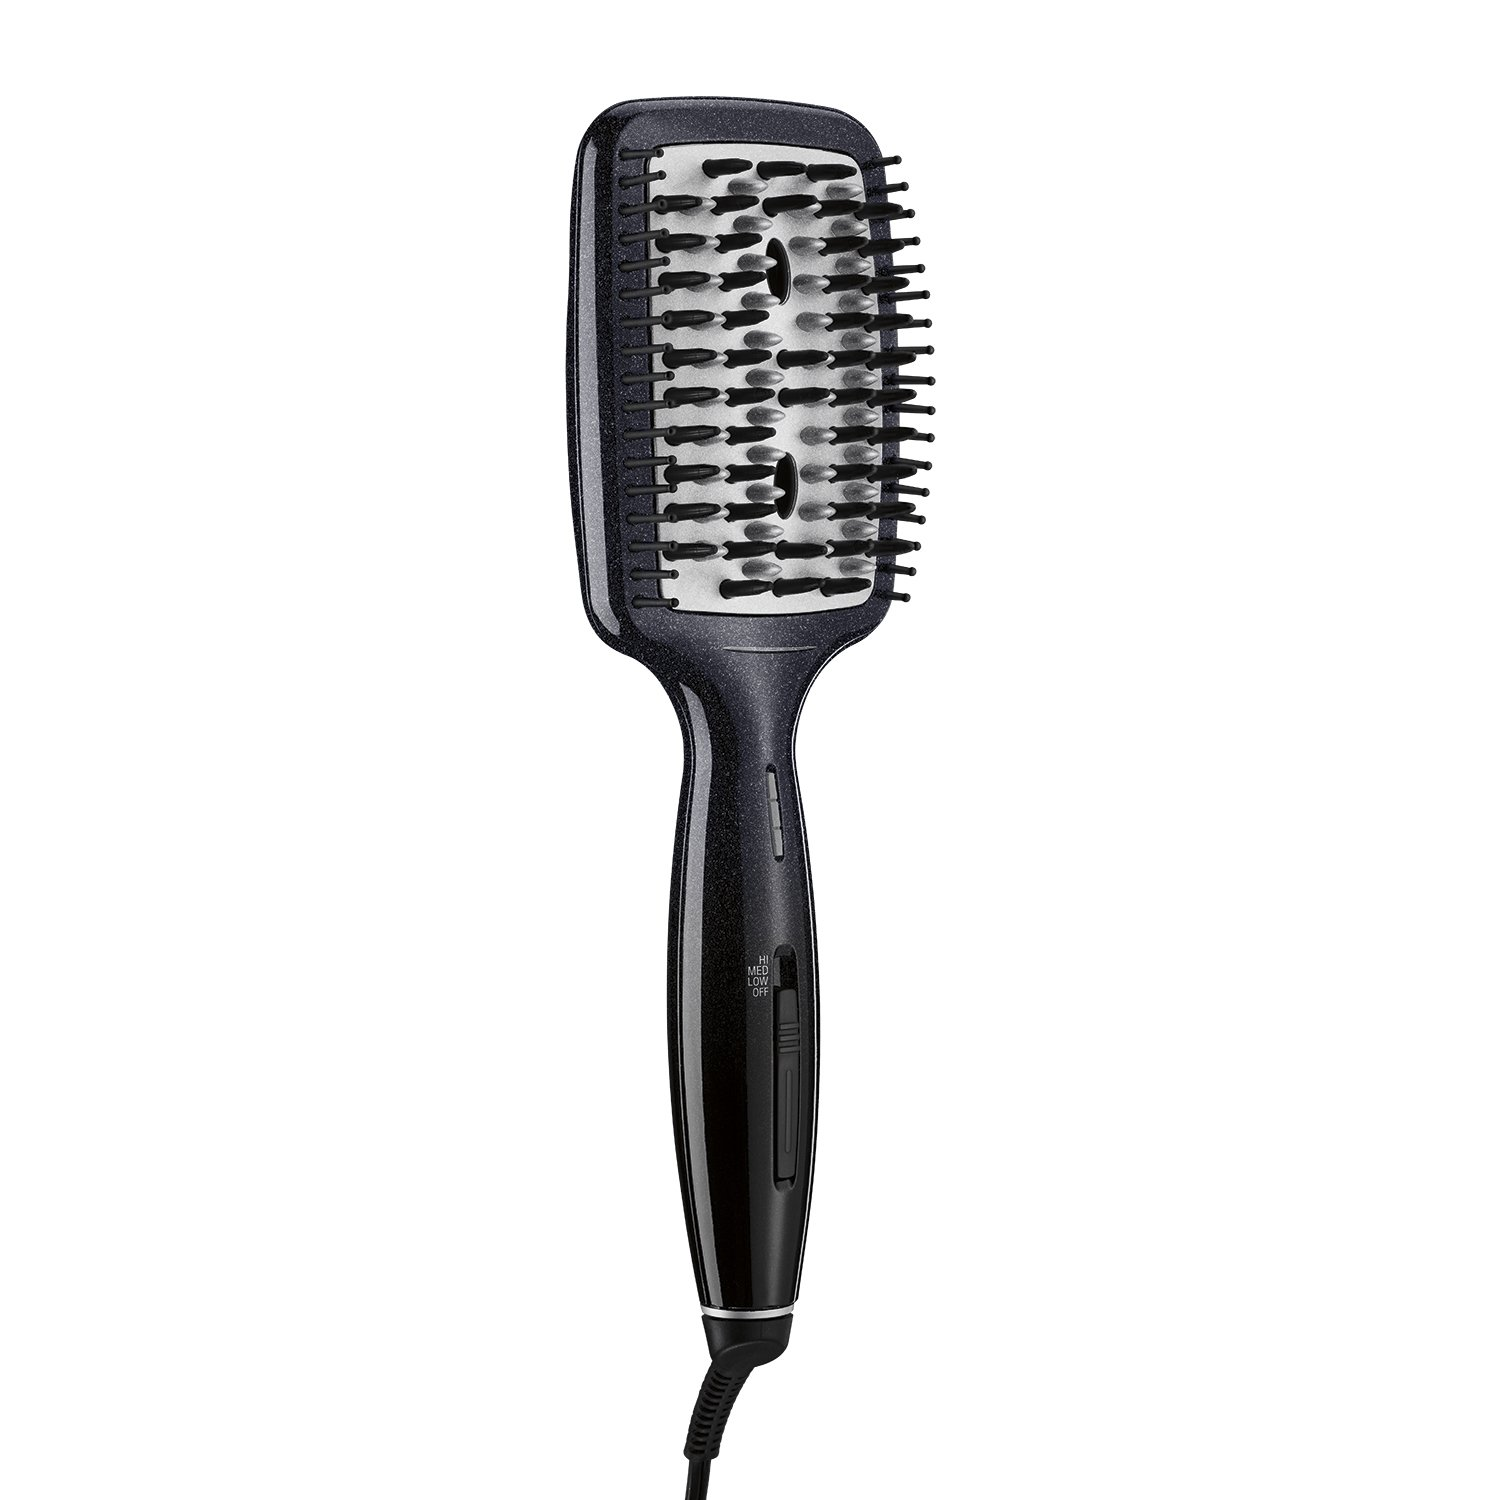 INFINITIPRO BY CONAIR Diamond-Infused Ceramic Smoothing Hot Brush/Straightening Brush; Black by Conair